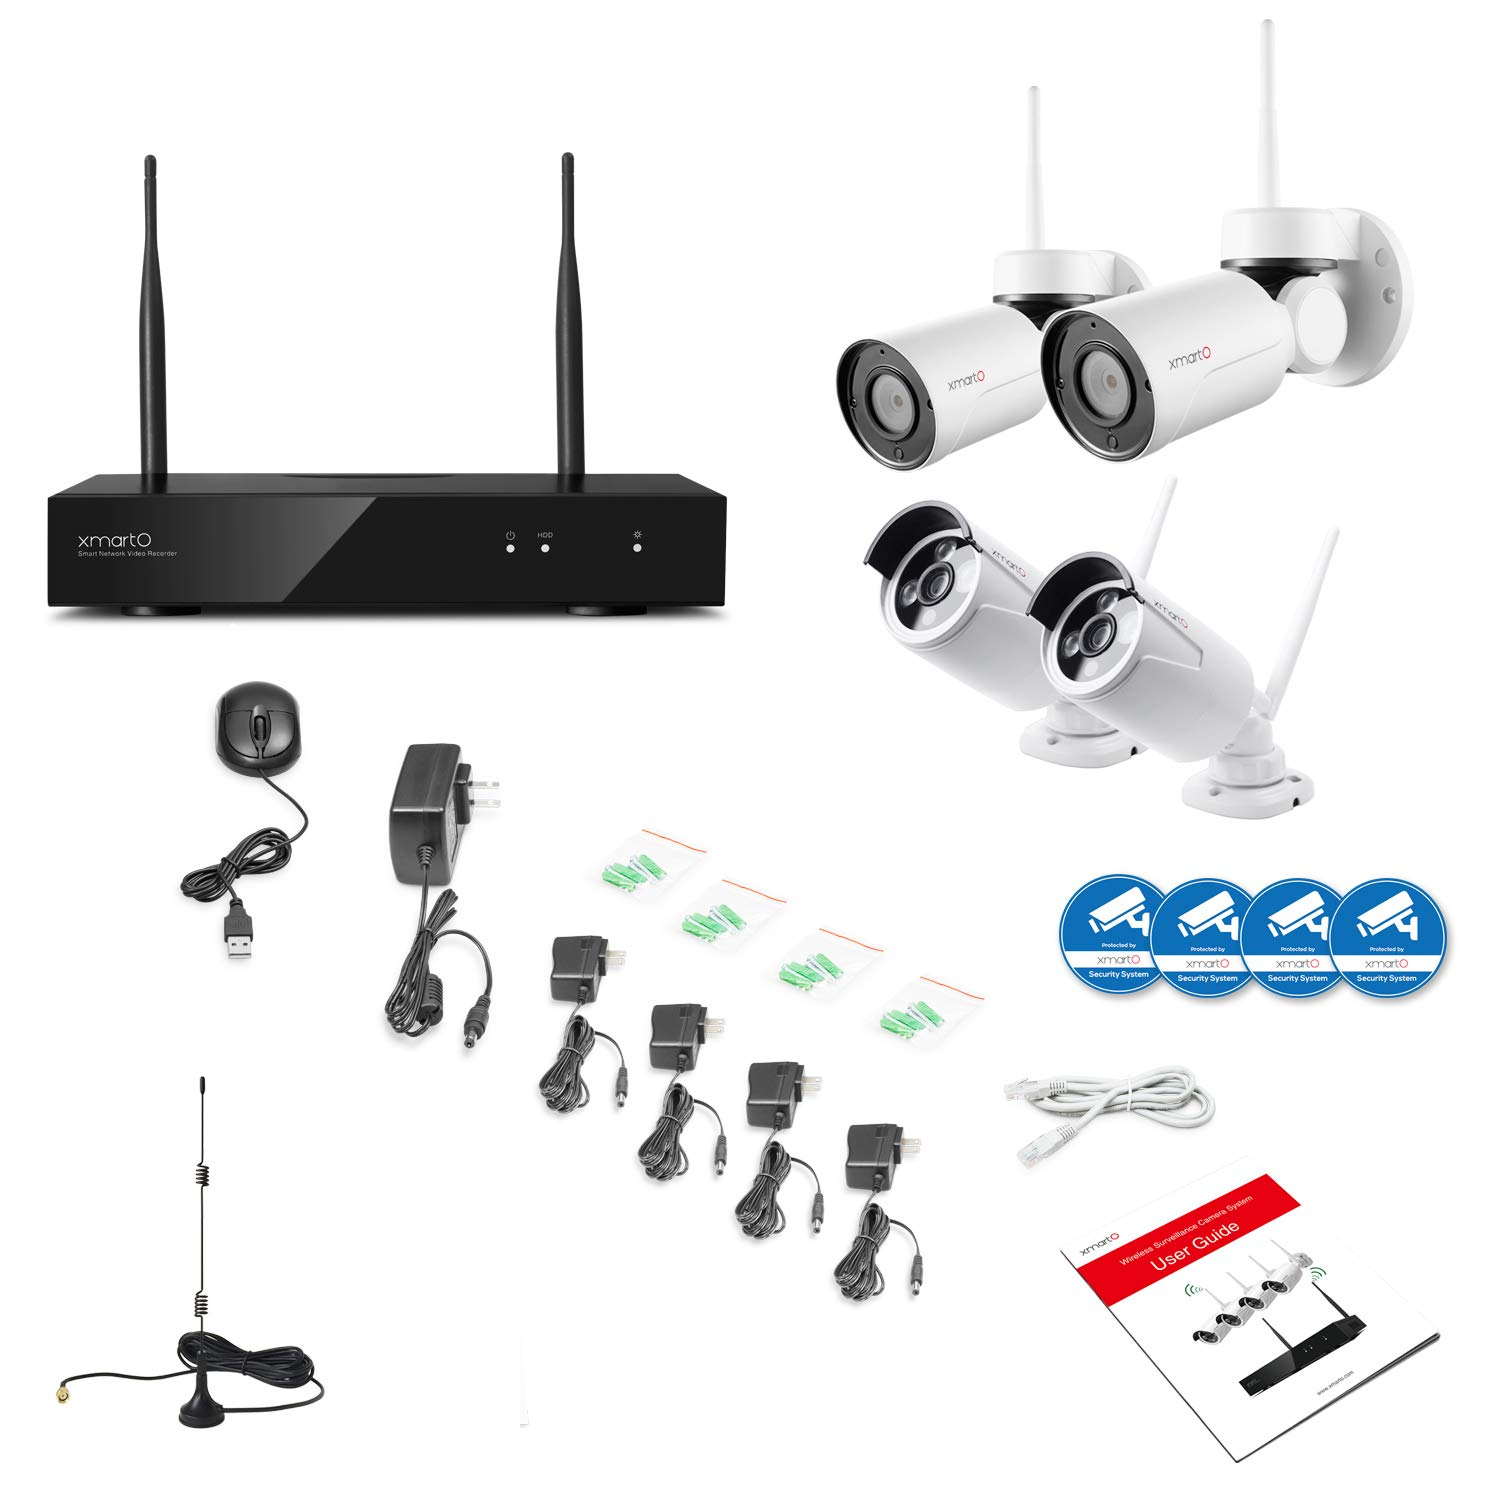 8CH 1080p NVR Built-in Router, Auto Pair, Mobile View, 1TB HDD XMARTO + 2pc Bullet IP Cameras for Home Surveillance 2pc WiFi Wireless Security Camera System PTZ Cameras Outdoor Expandable 8CH